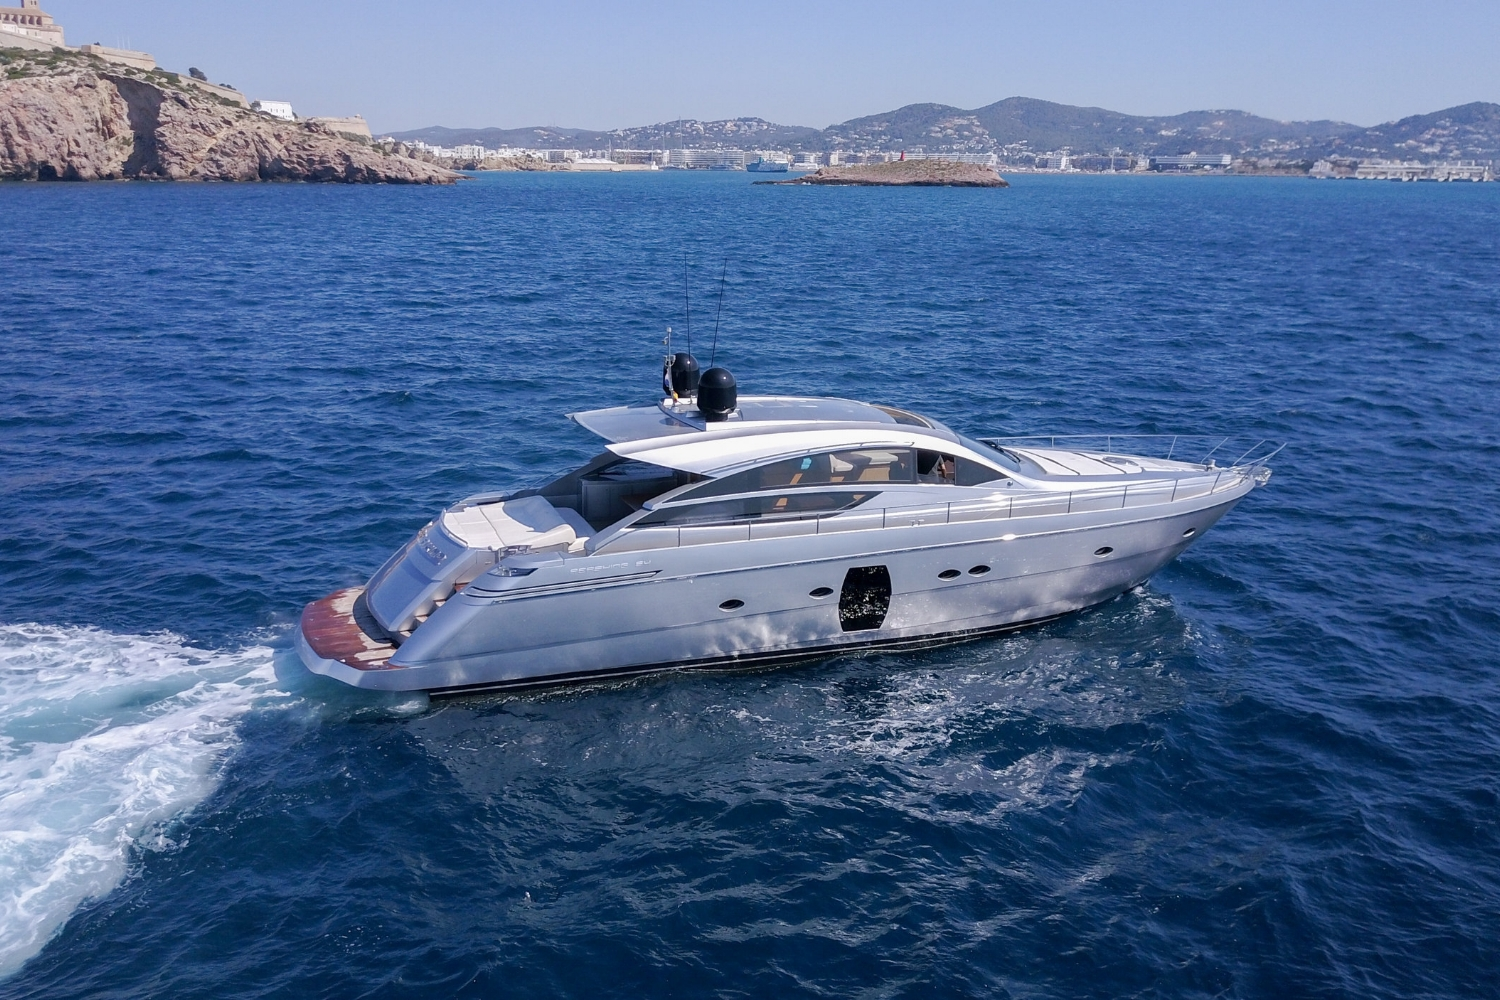 PERSHING 64 - Capacity: 10 | From €4800